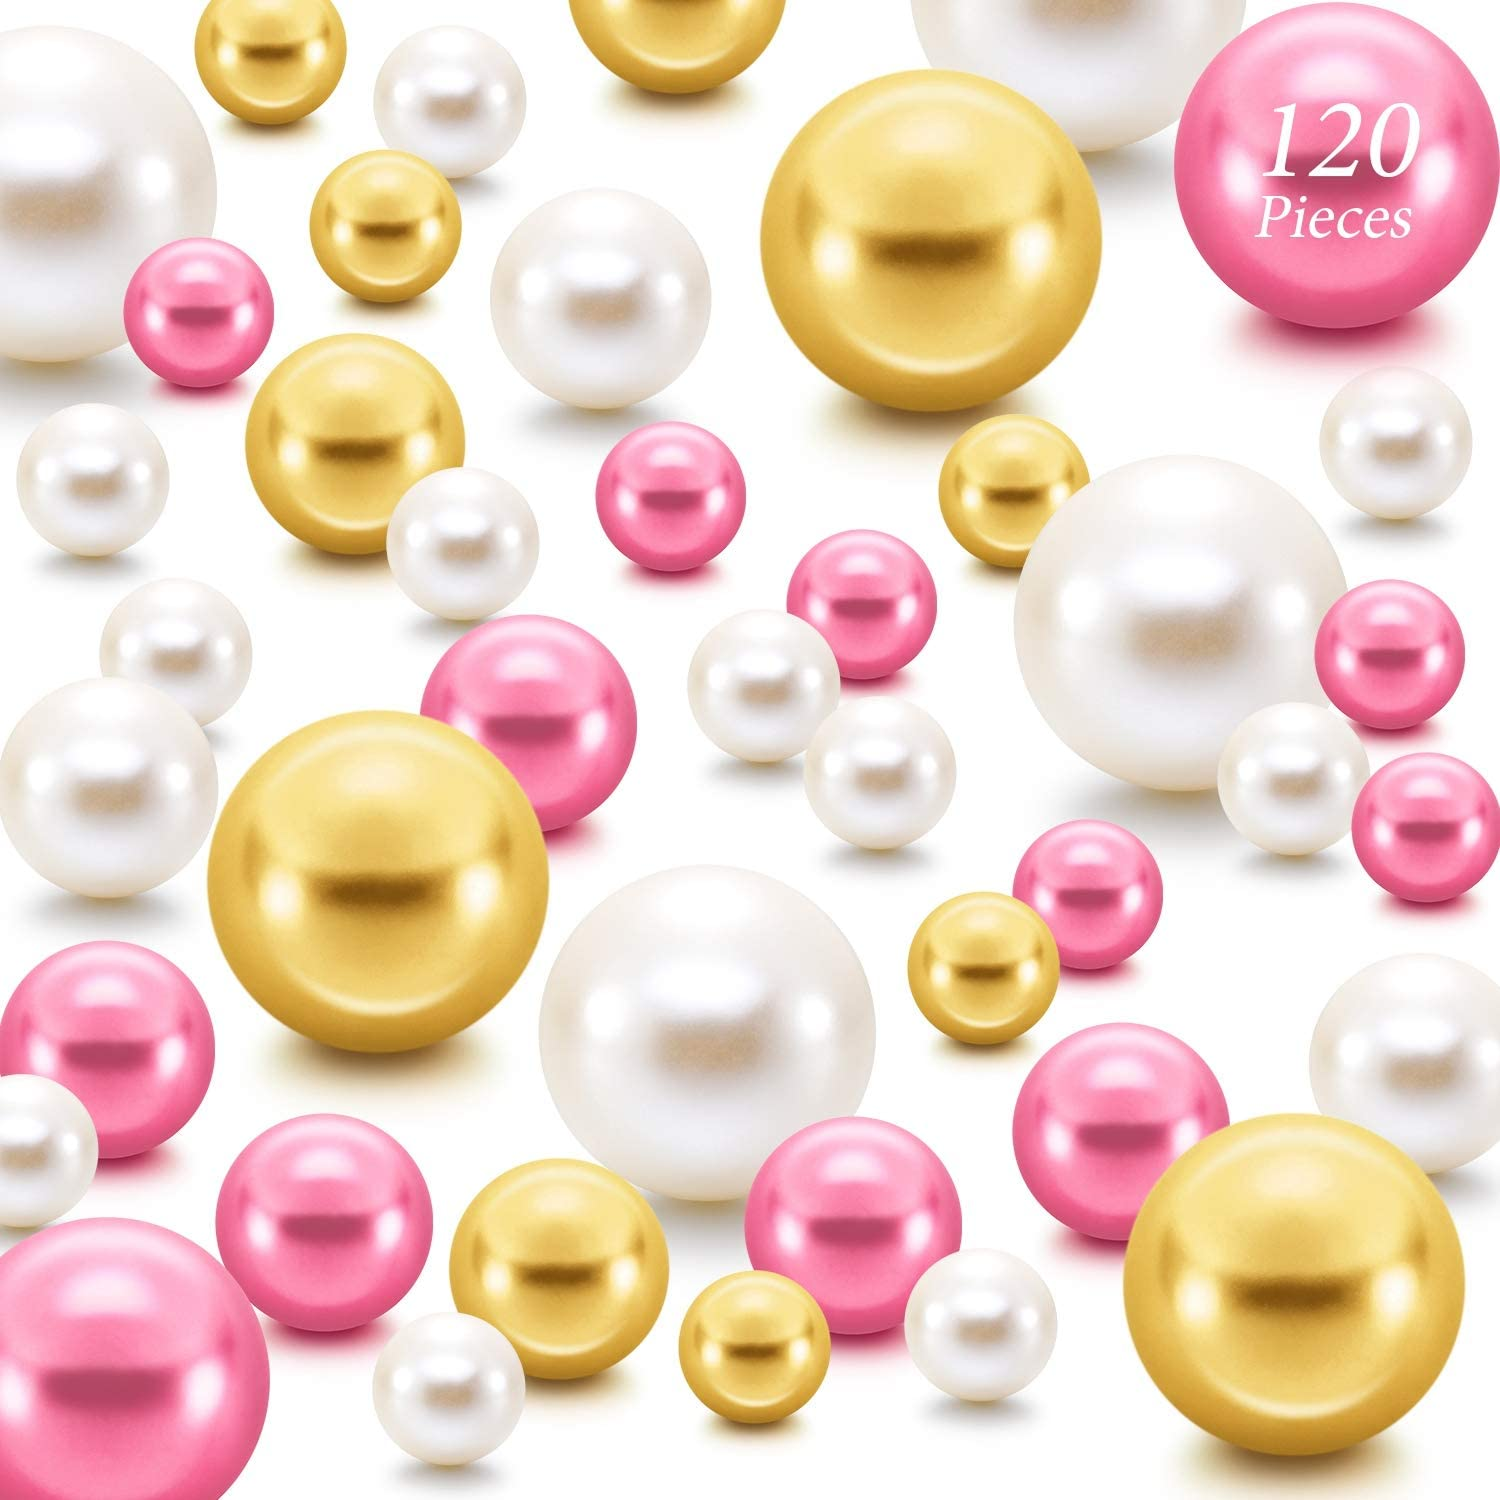 Hicarer 120 Pieces Pearl for Vase Filler Pearls Bead for Vase Makeup Beads for Brushes Holder Assorted Round Faux Pearl Beads for Home Wedding Decor, 14/20/ 30 mm(Bright Gold, Rose Red, Beige)